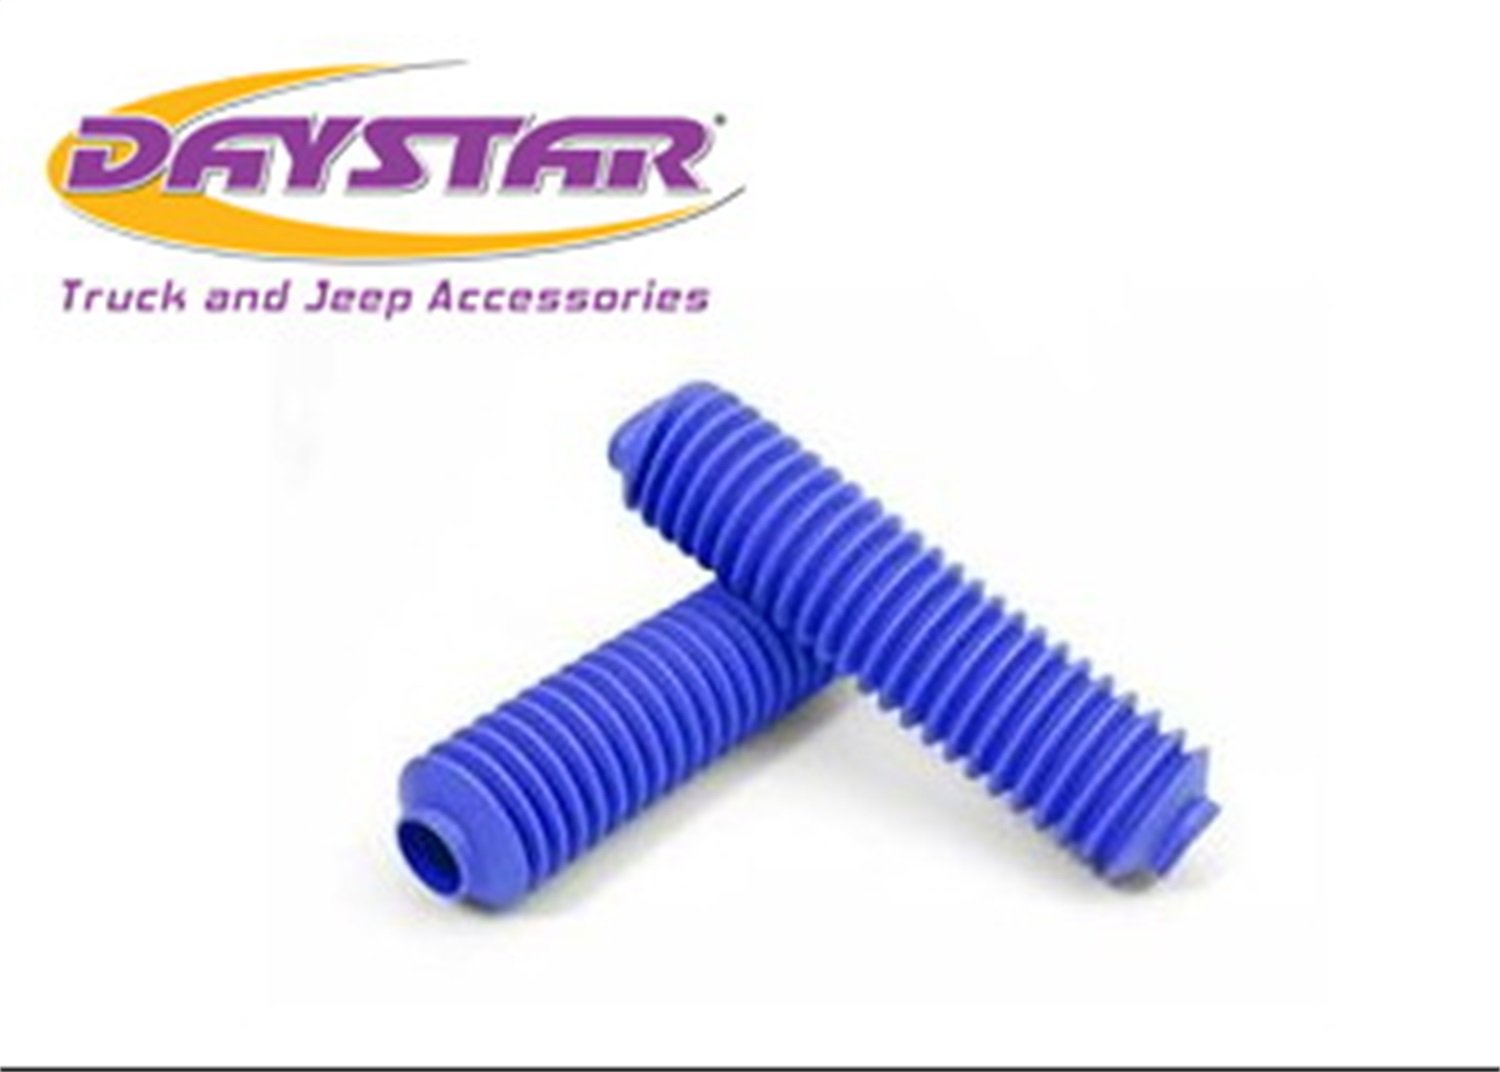 Daystar KU20002RB Blue Full Size Shock Boot with Zip Tie Royal